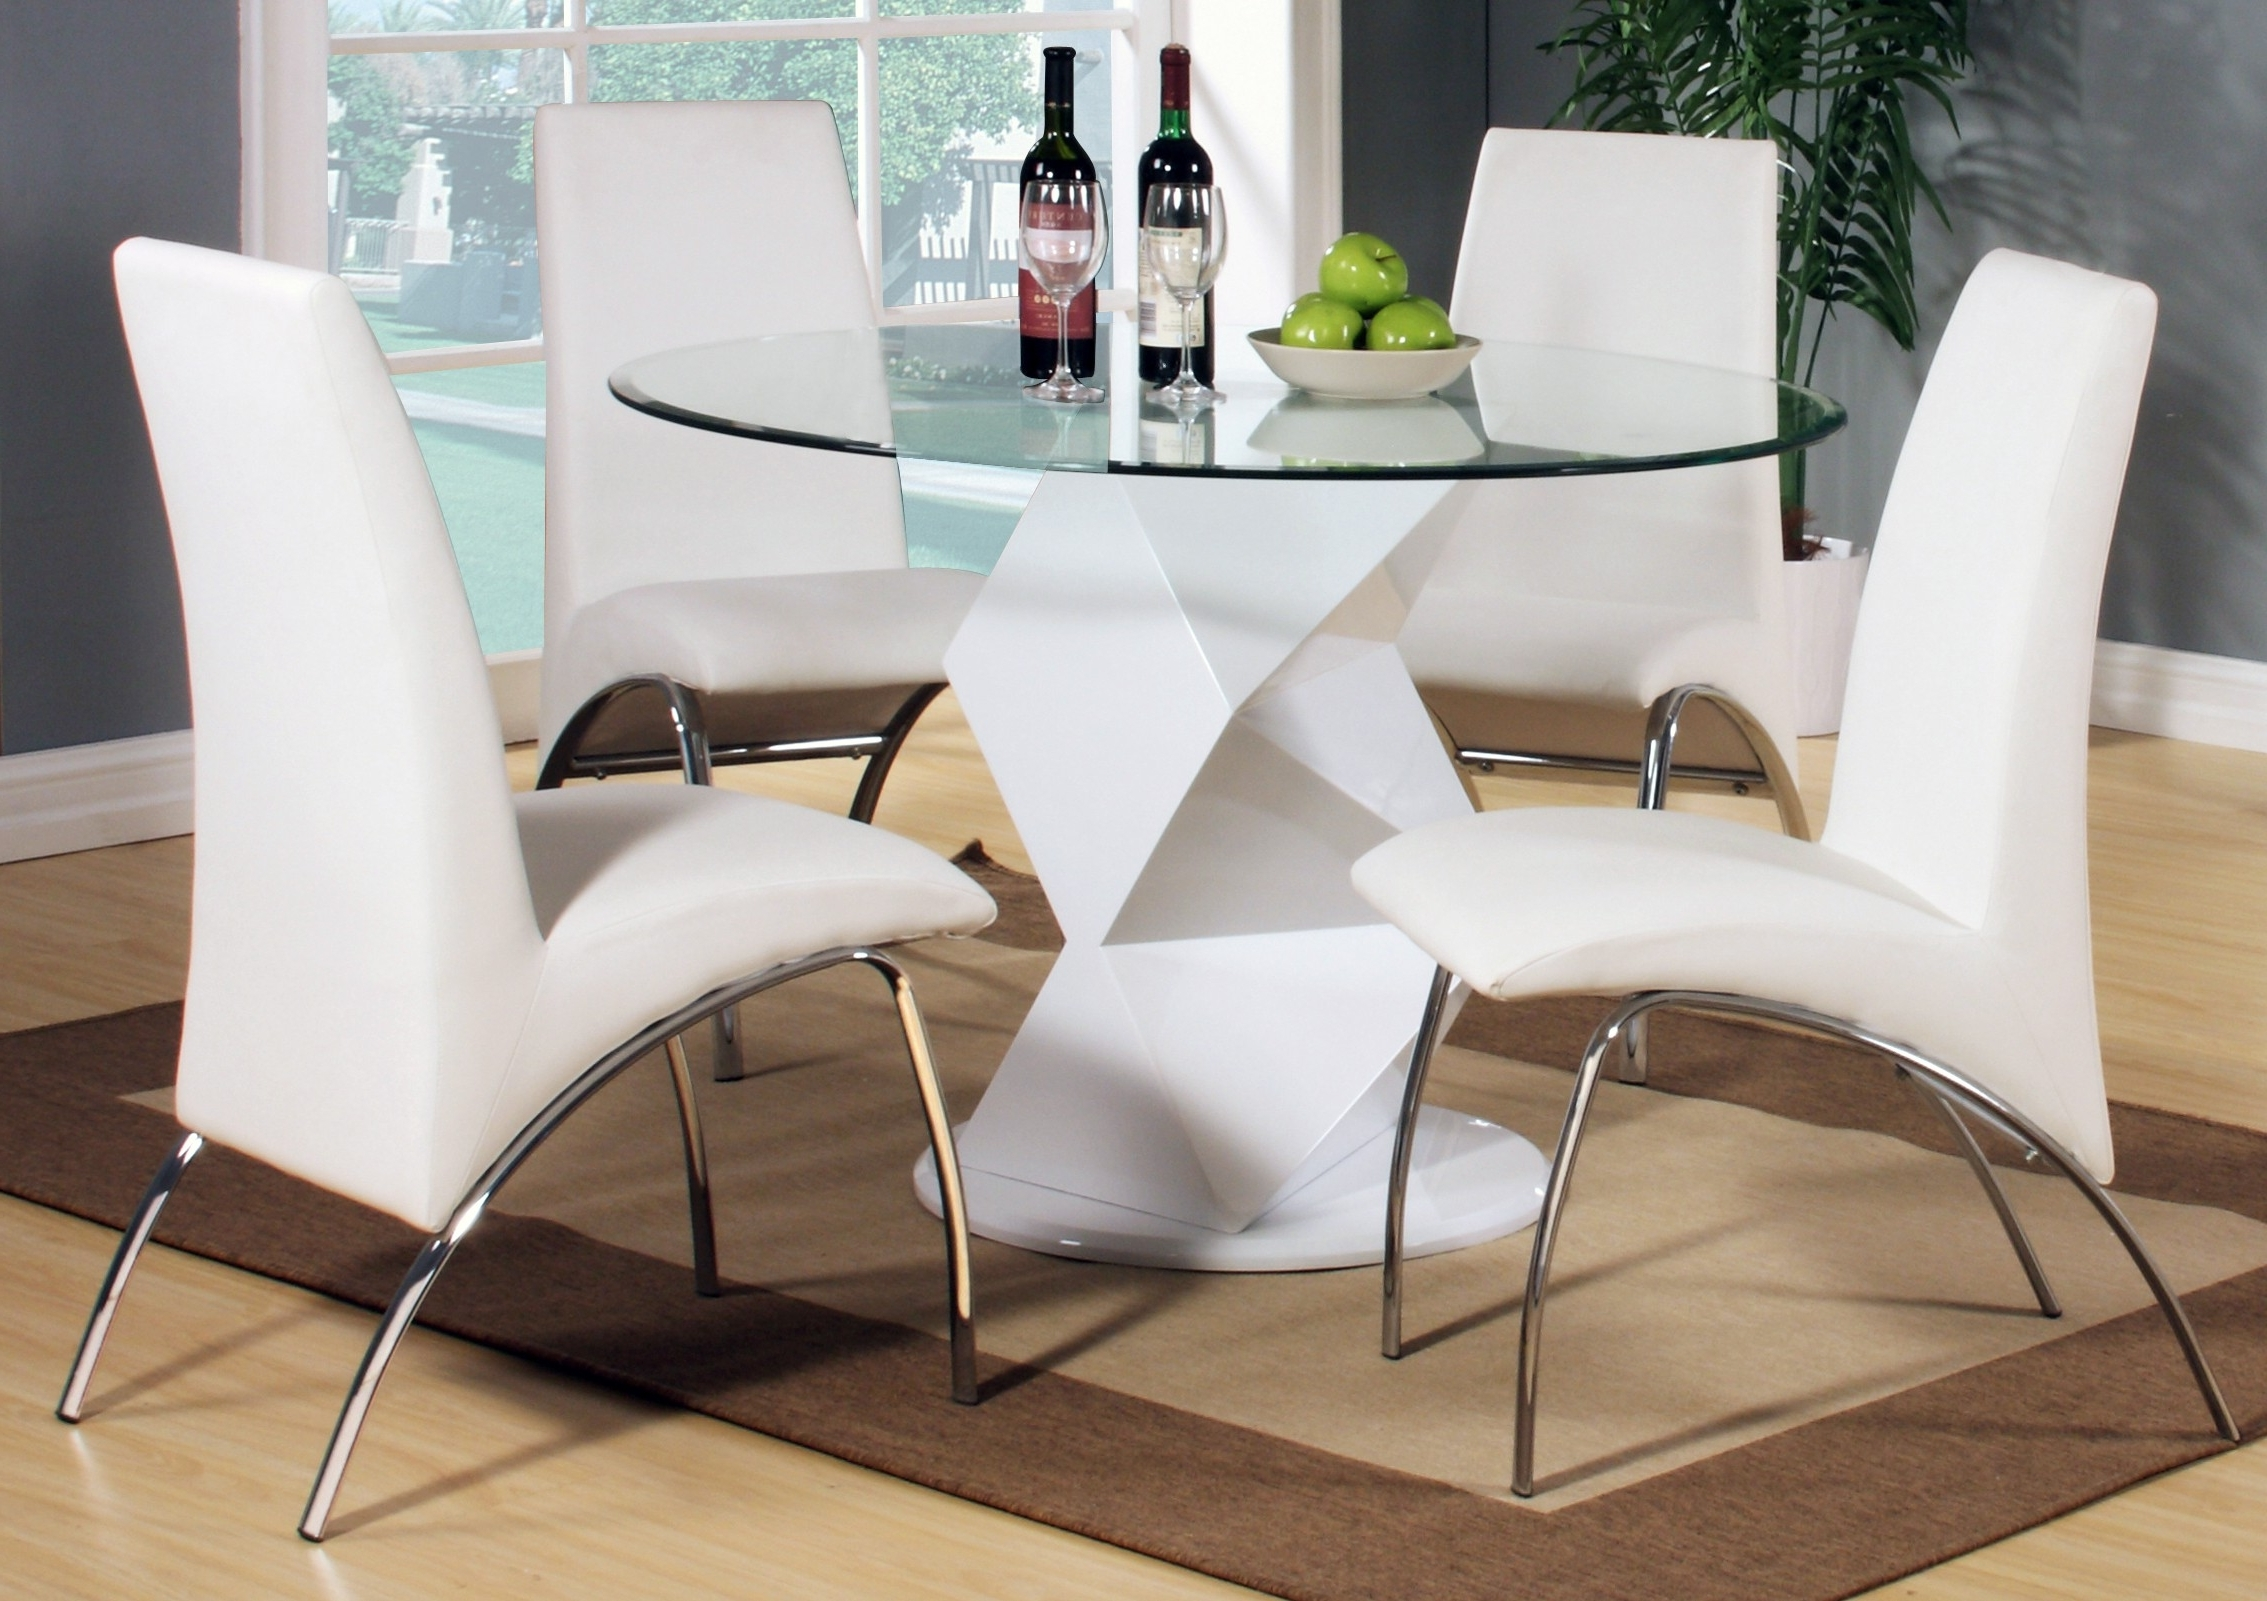 Popular Finn White High Gloss Round Dining Table Set 4 Seater Throughout White High Gloss Dining Tables And Chairs (Gallery 1 of 25)